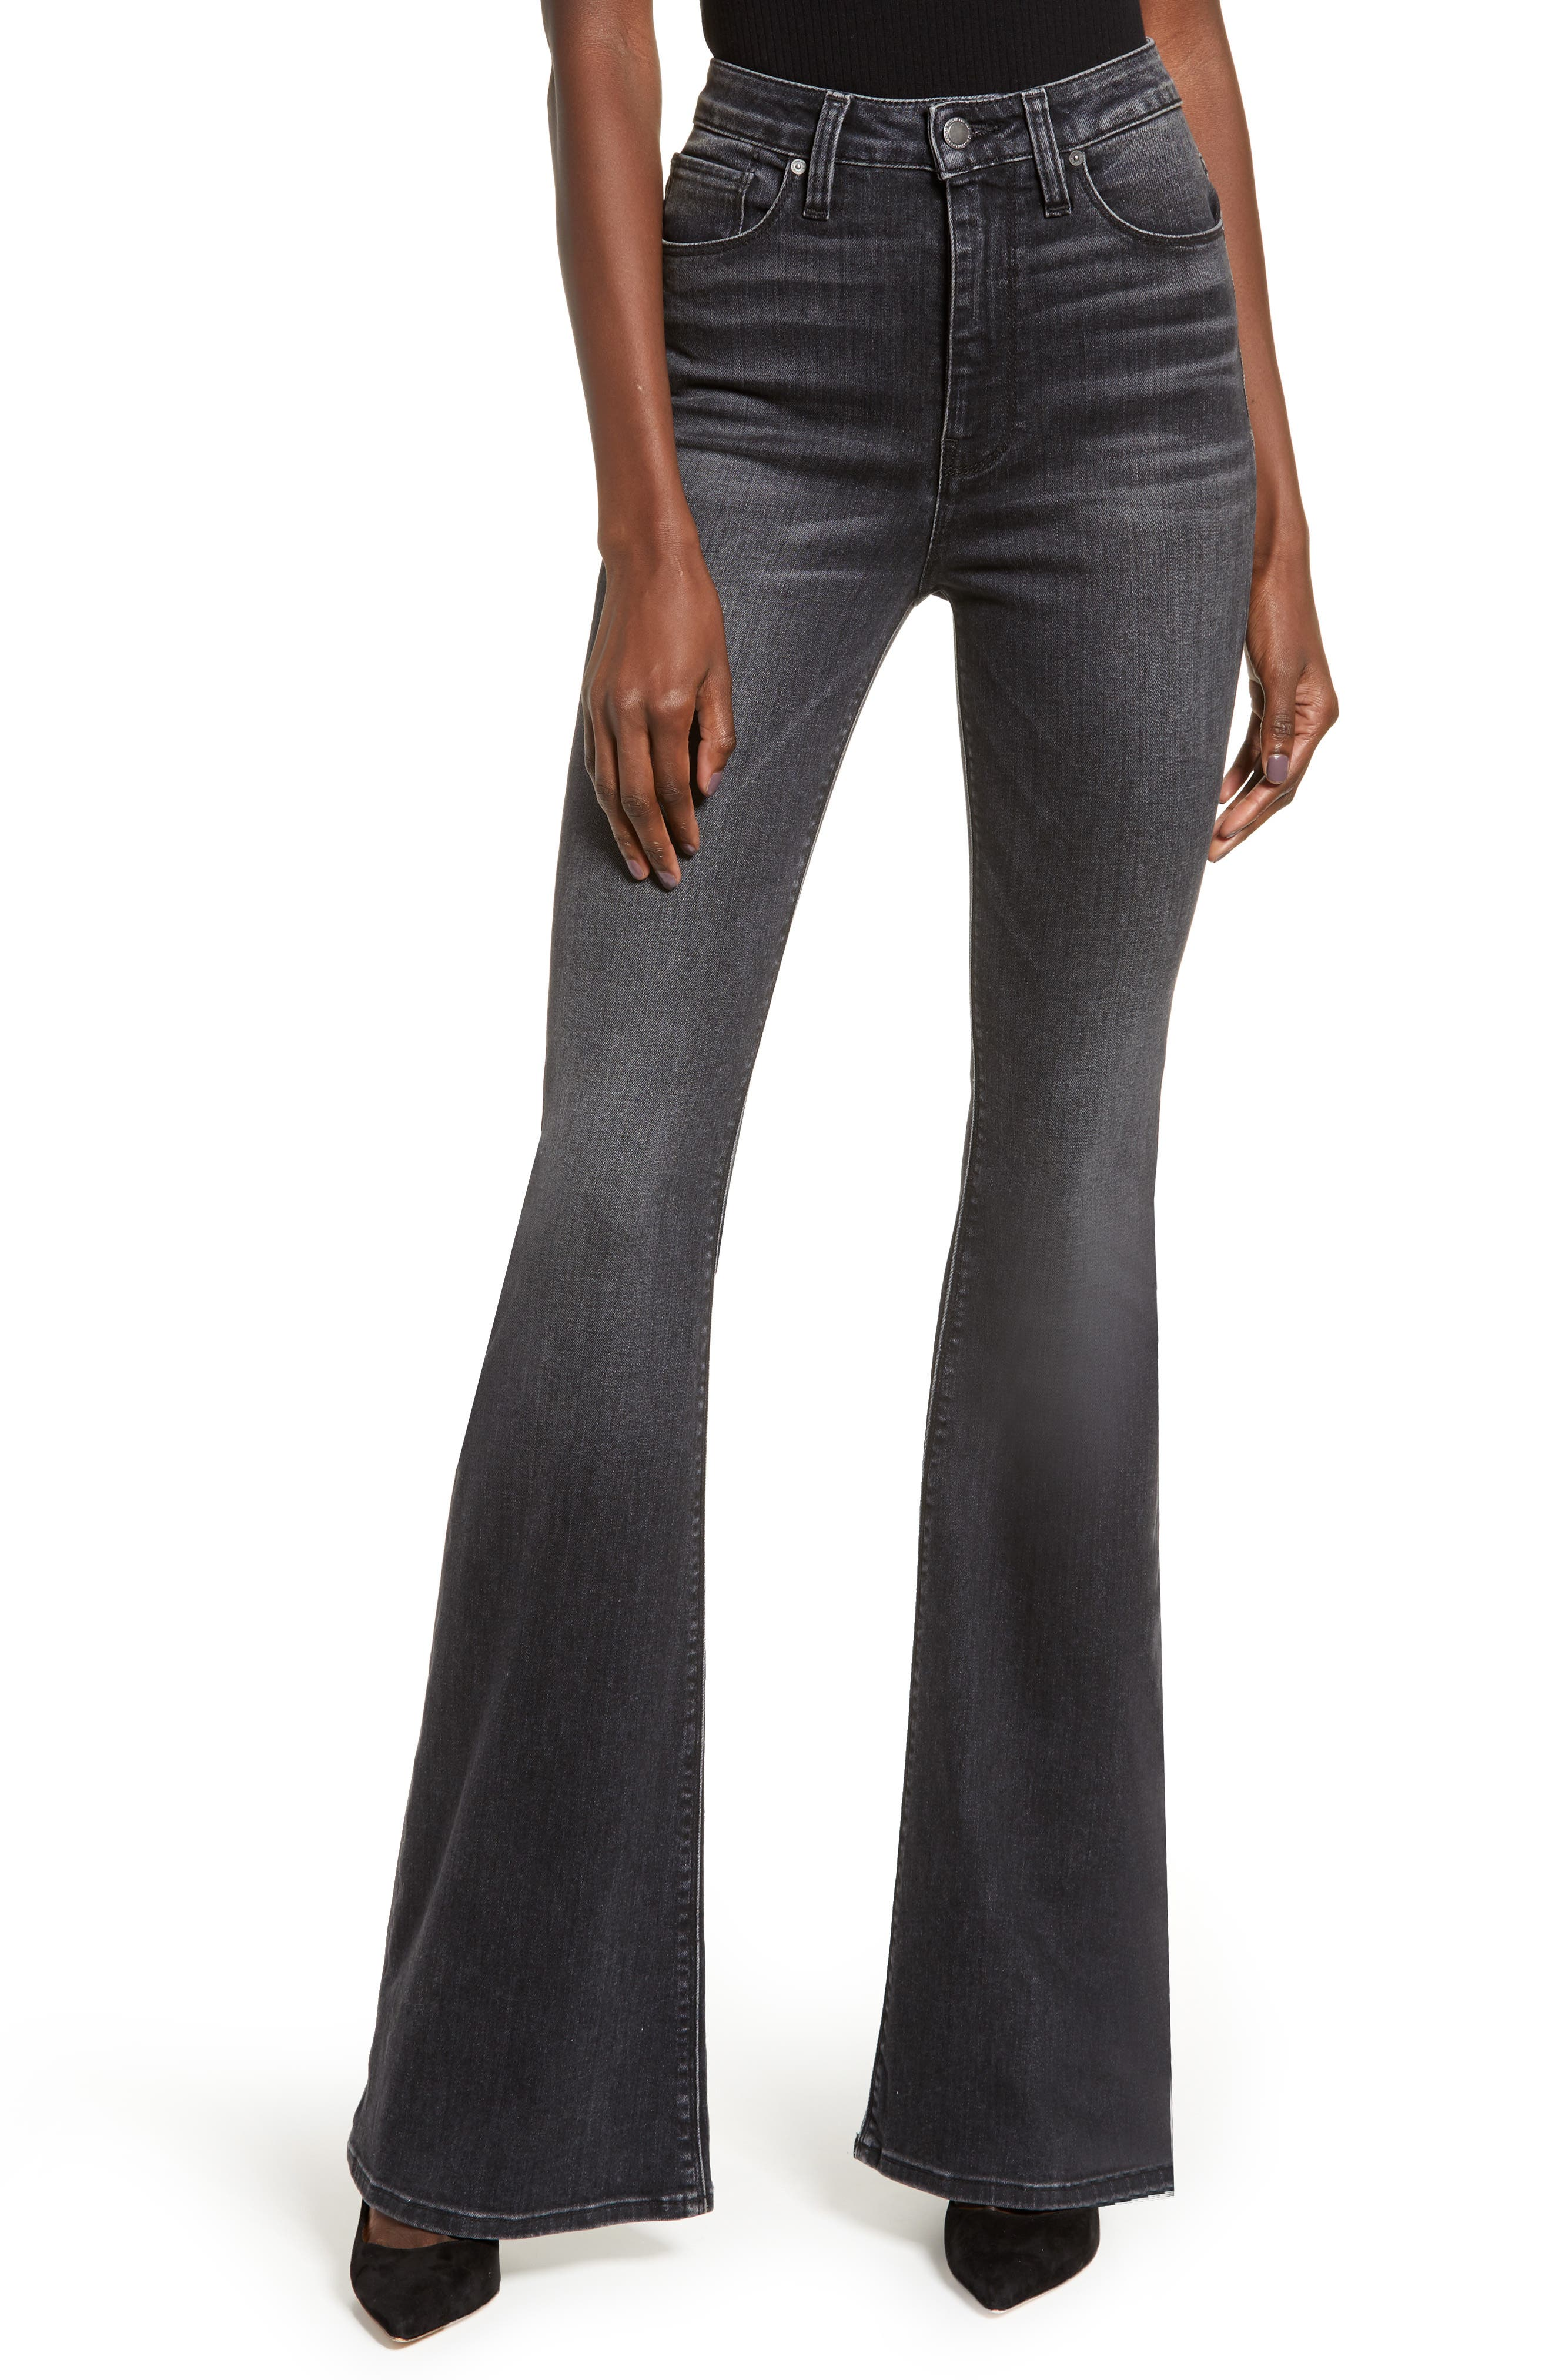 Dial up the drama in these high-rise flare jeans cut from stonewashed stretch denim that sculpts your figure and retains its shape from day to night. Style Name: Hudson Jeans Holly High Waist Flare Jeans (Kona). Style Number: 5775527. Available in stores.